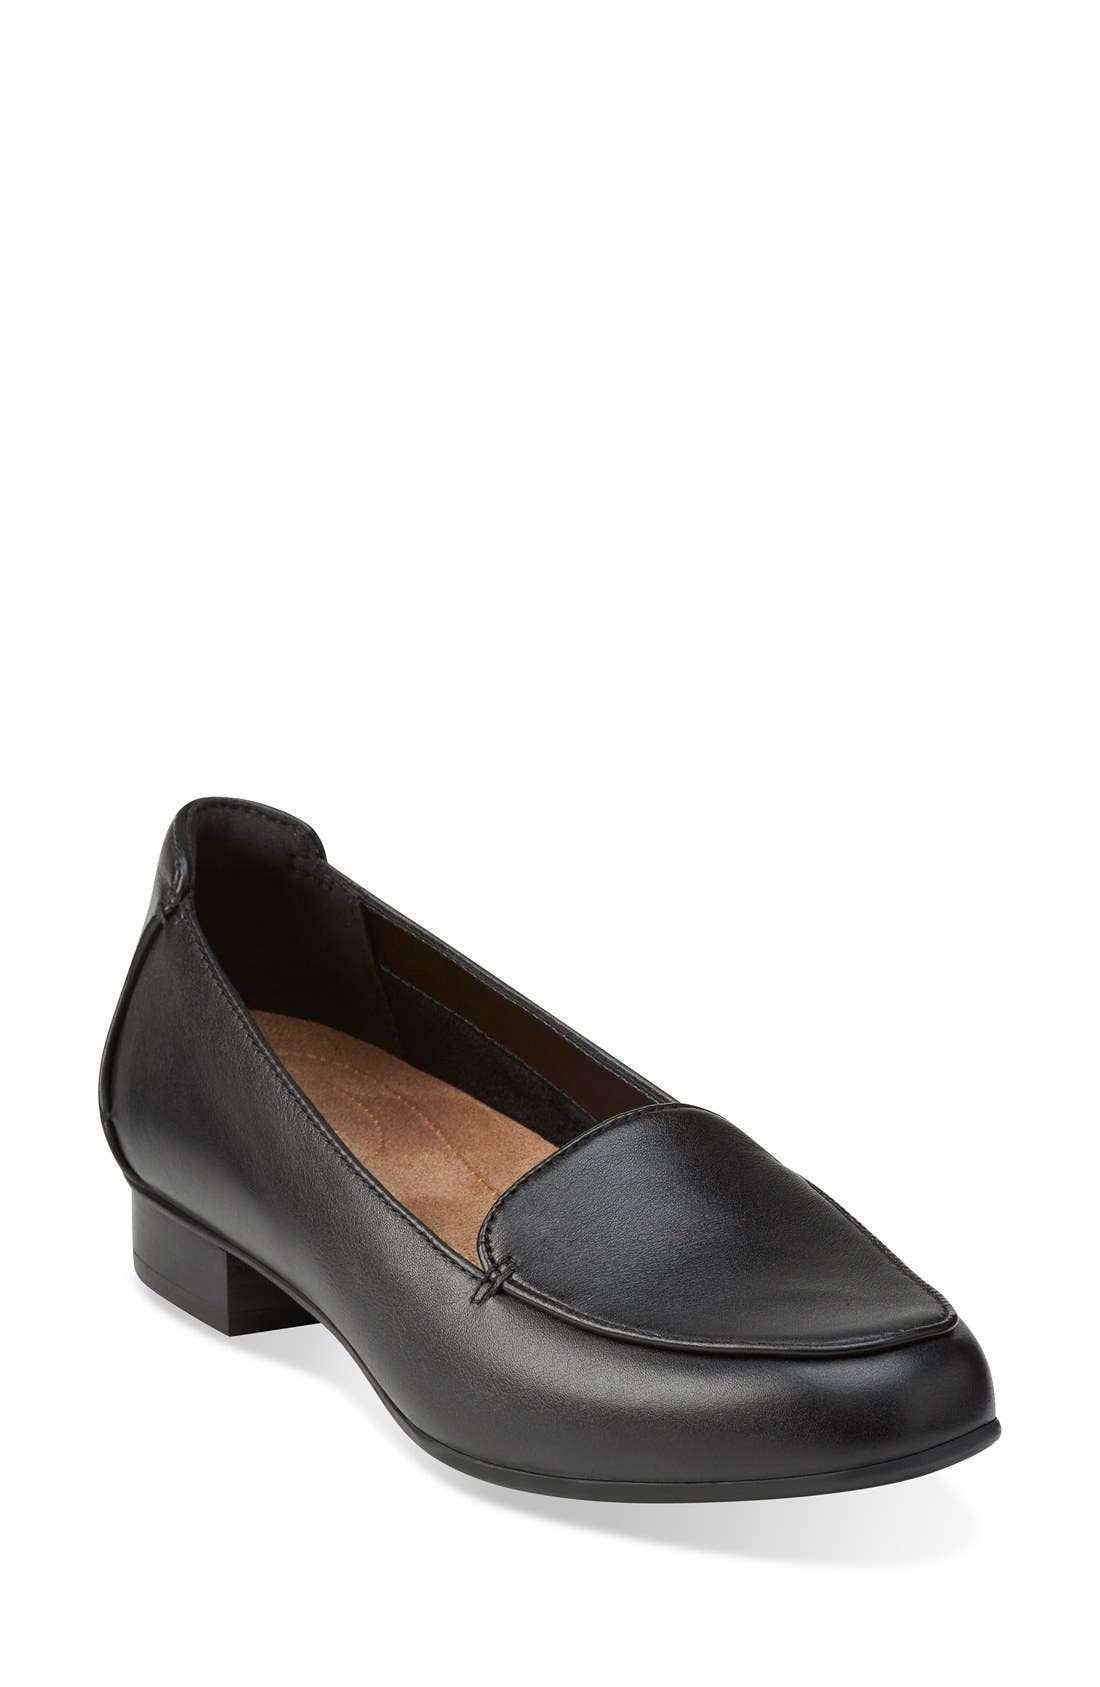 'Keesha Luca' Loafer,                         Main,                         color, 005